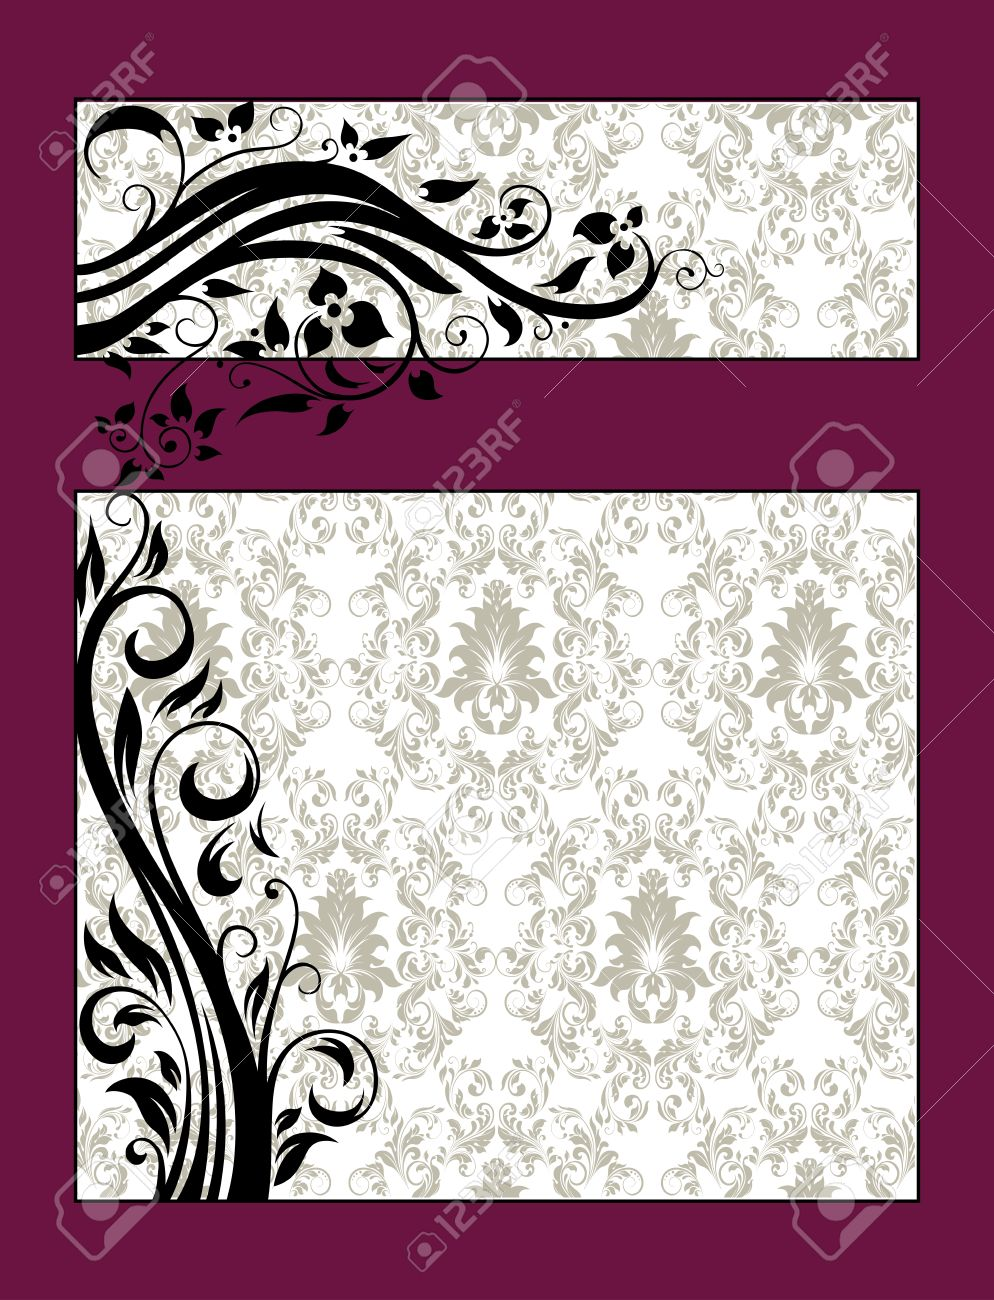 Vintage invitation card with ornate elegant retro abstract floral vector vintage invitation card with ornate elegant retro abstract floral design black flowers and leaves on pale green and white background with maroon stopboris Images